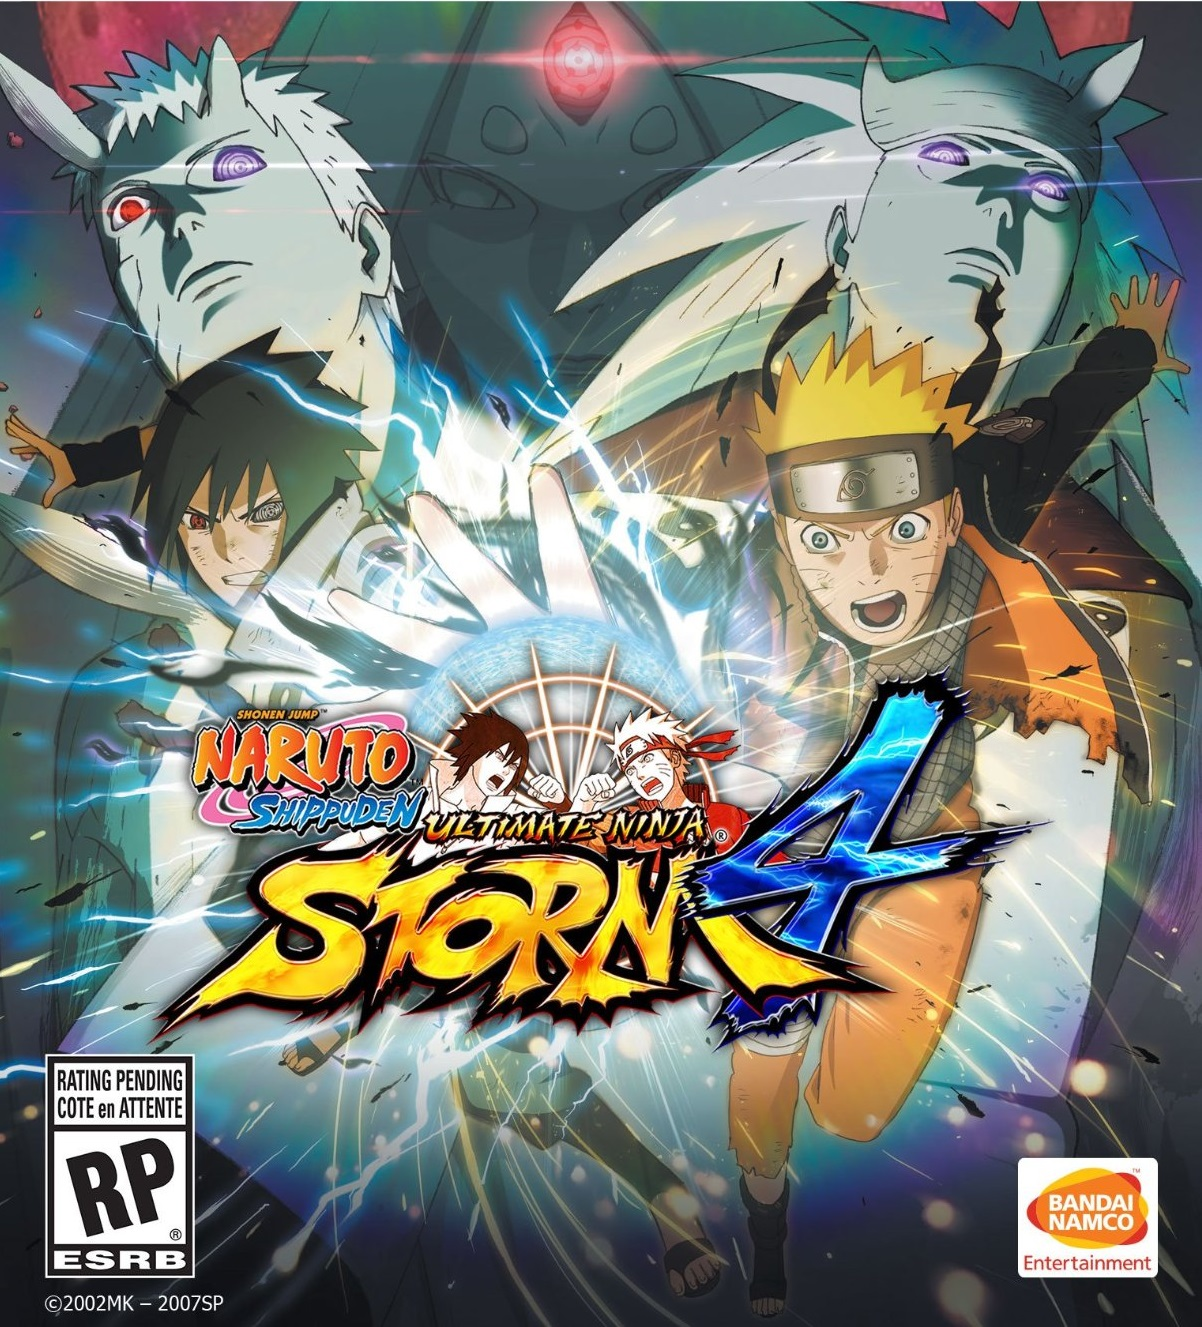 Cover clipart naruto game Ninja Ultimate Bomb Naruto Storm